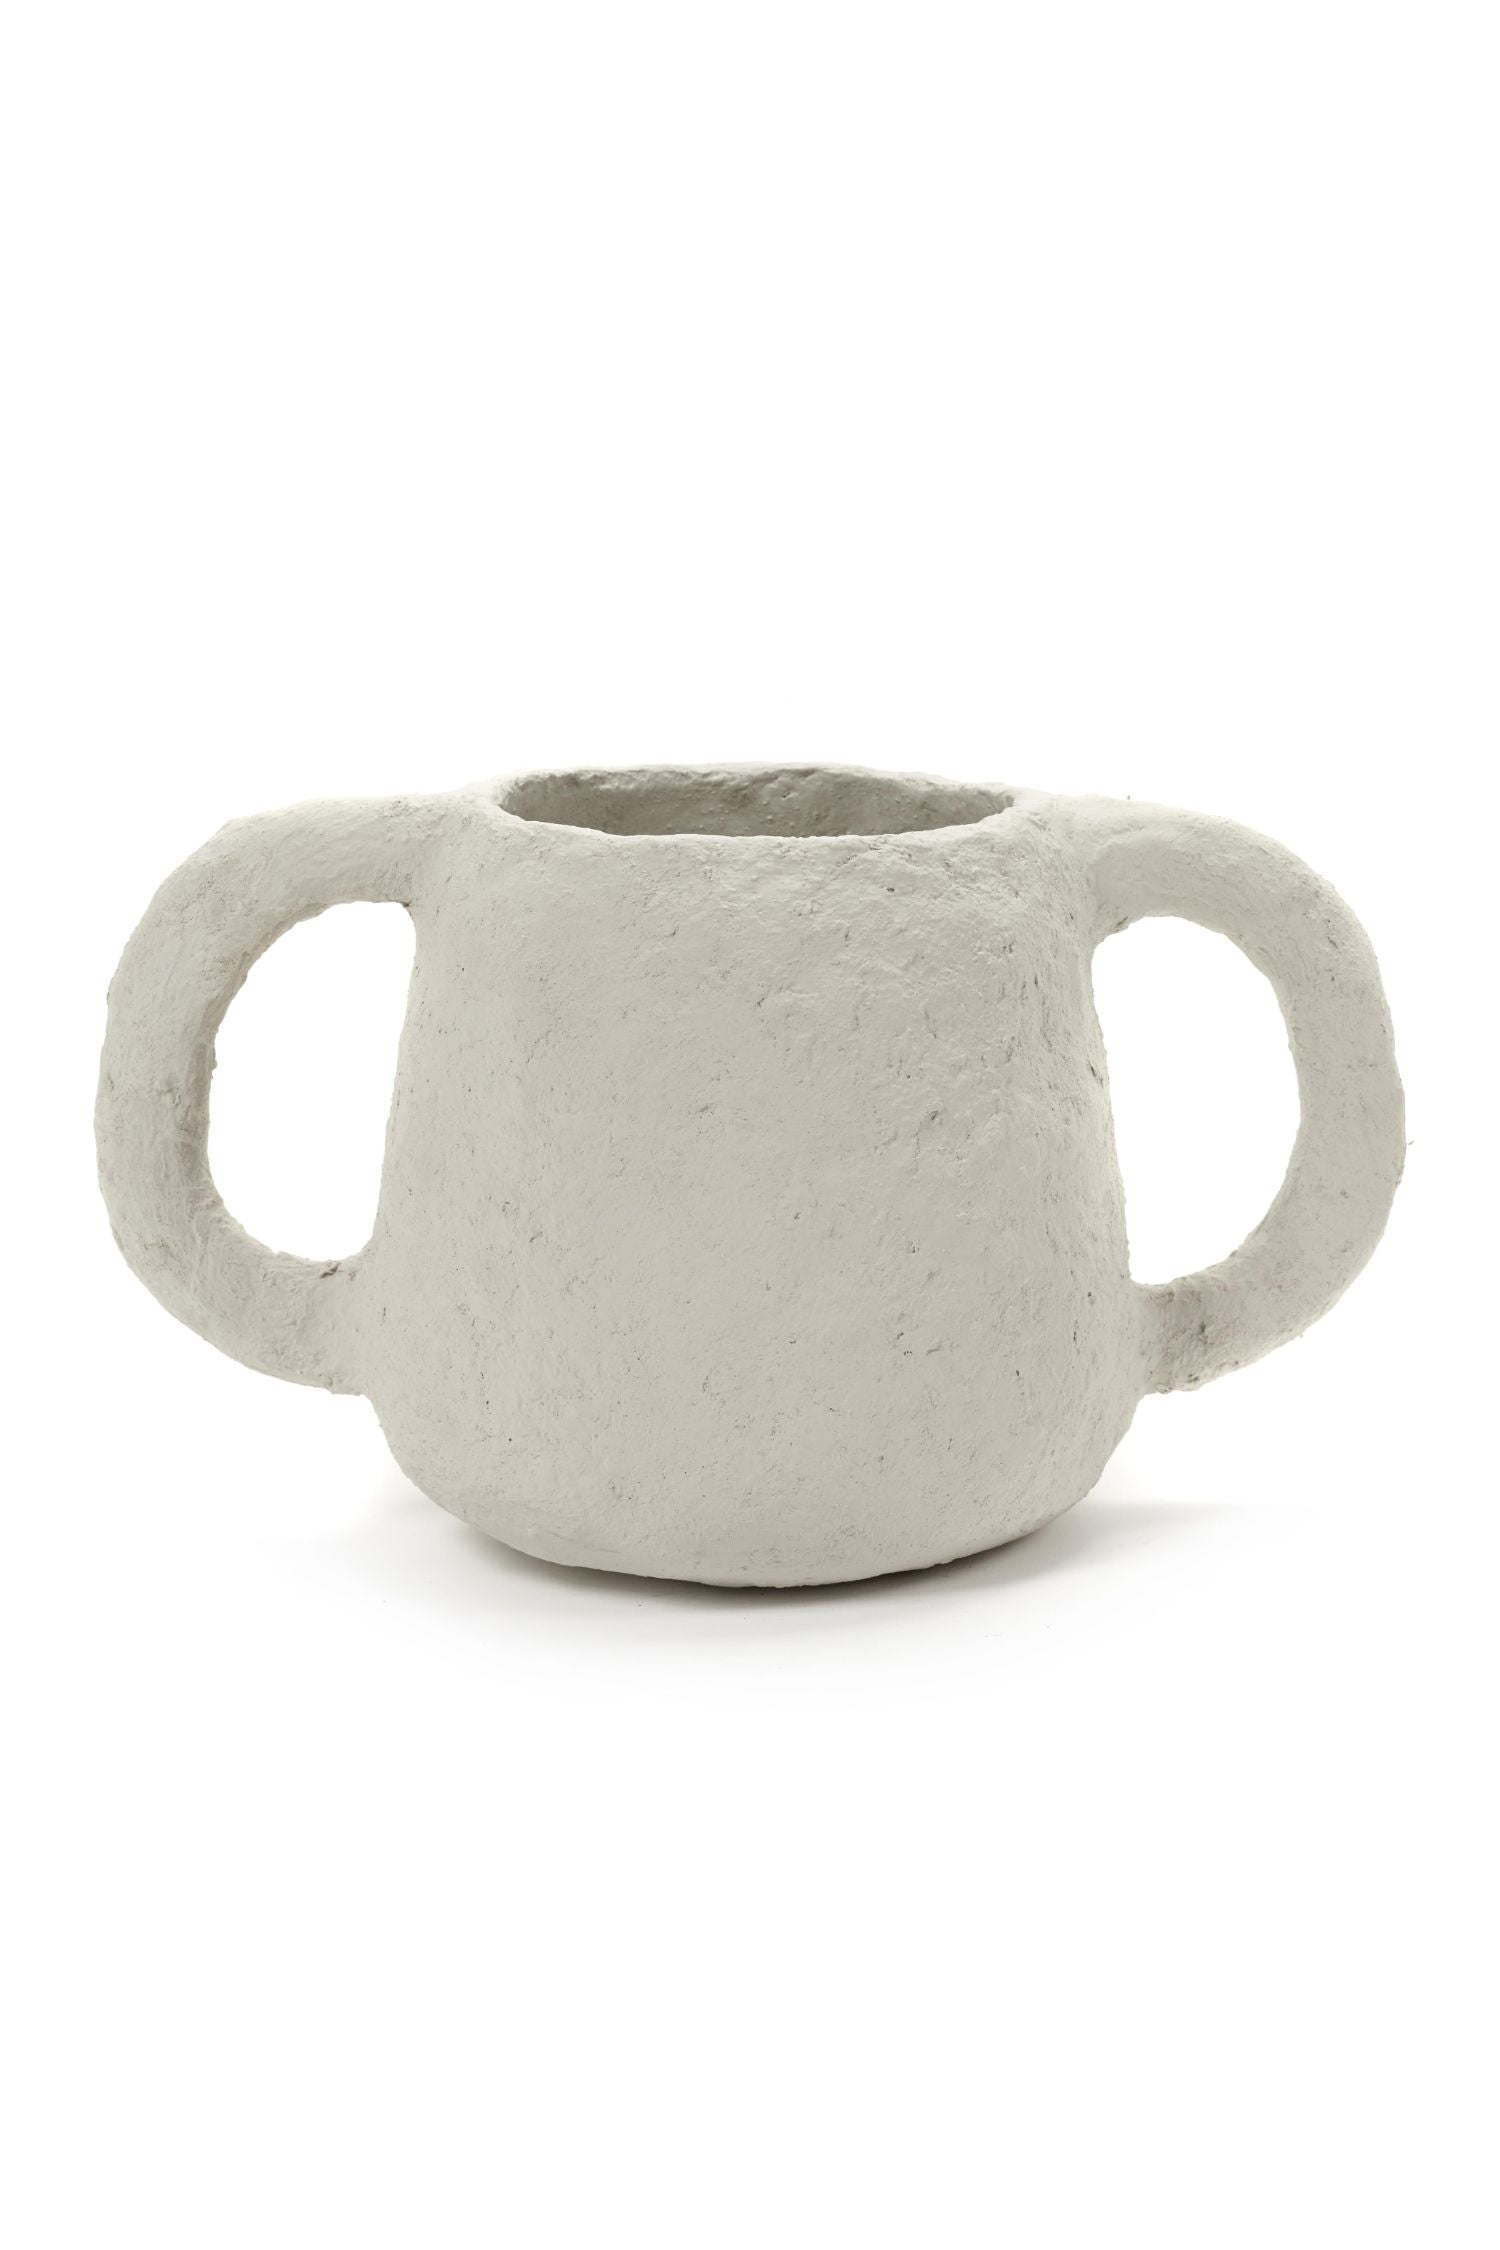 marie pot with handles